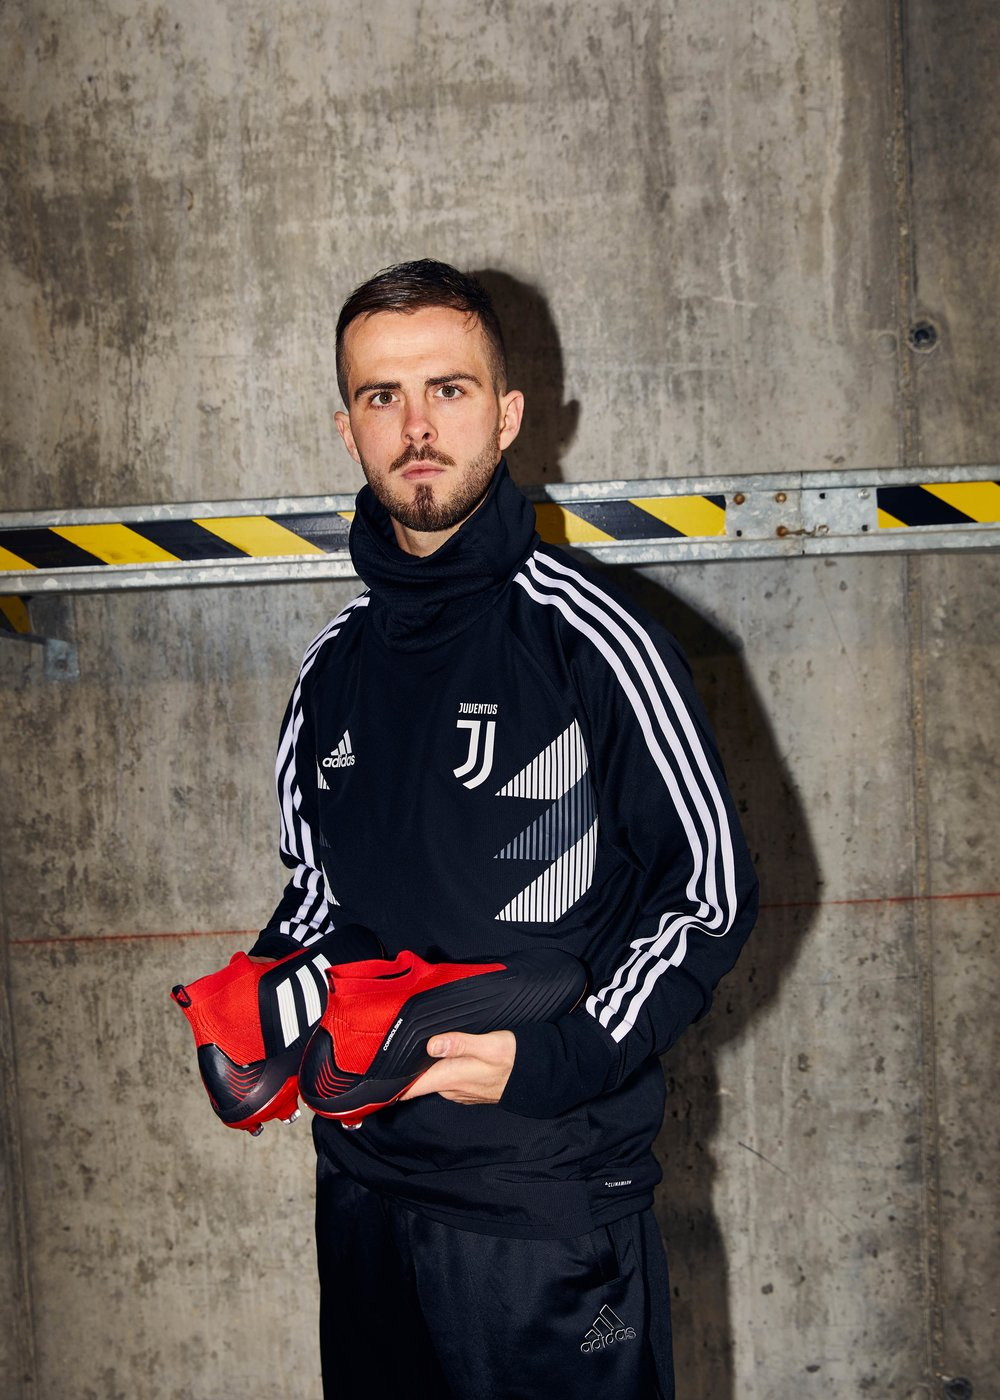 FW18_AClubs_2D_Juventus_SoccerBible_FW18_AClubs_2D_Juventus_SoccerBible_Pjanic_312.jpg